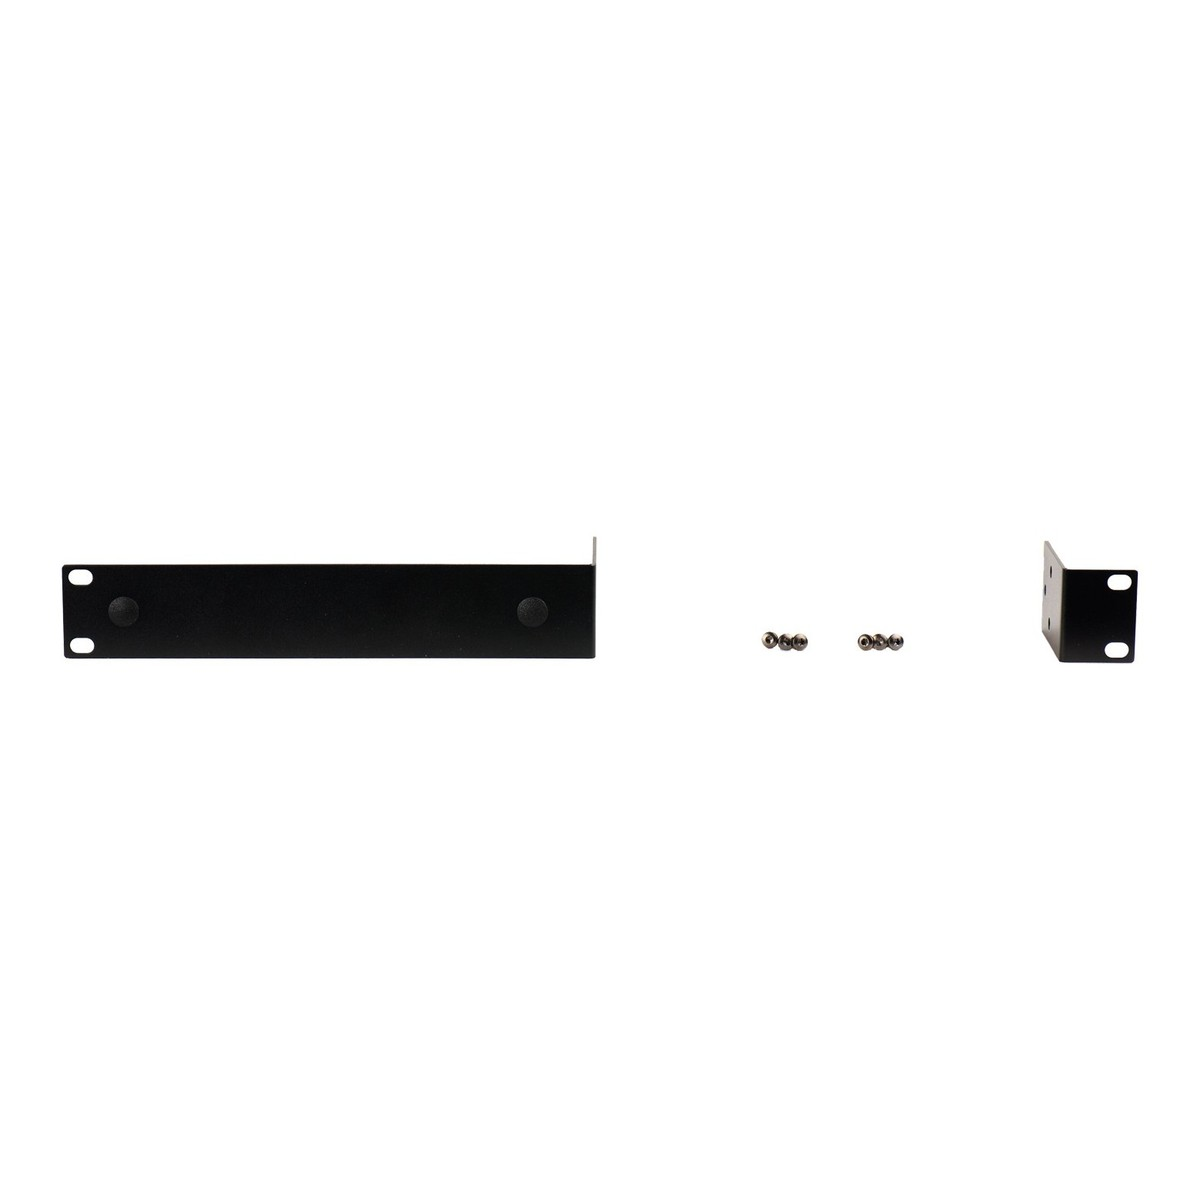 Electro Voice Rm300 Single Rack Mount Kit